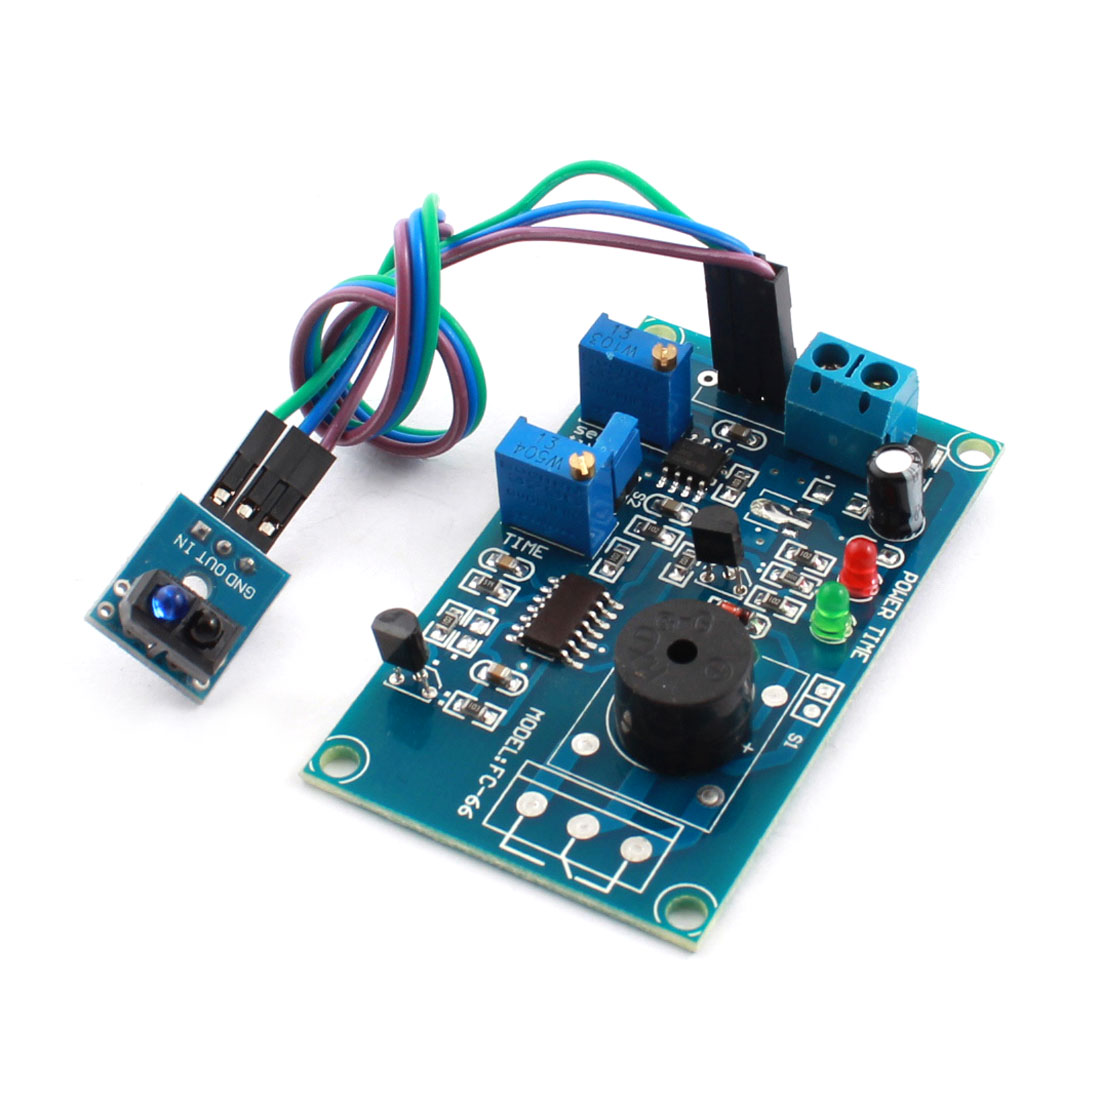 FC-66 DC5V TCRT5000 Infrared Reflection Sensor Alarm Time Delay PCB Circuit Module w Piezo Buzzer